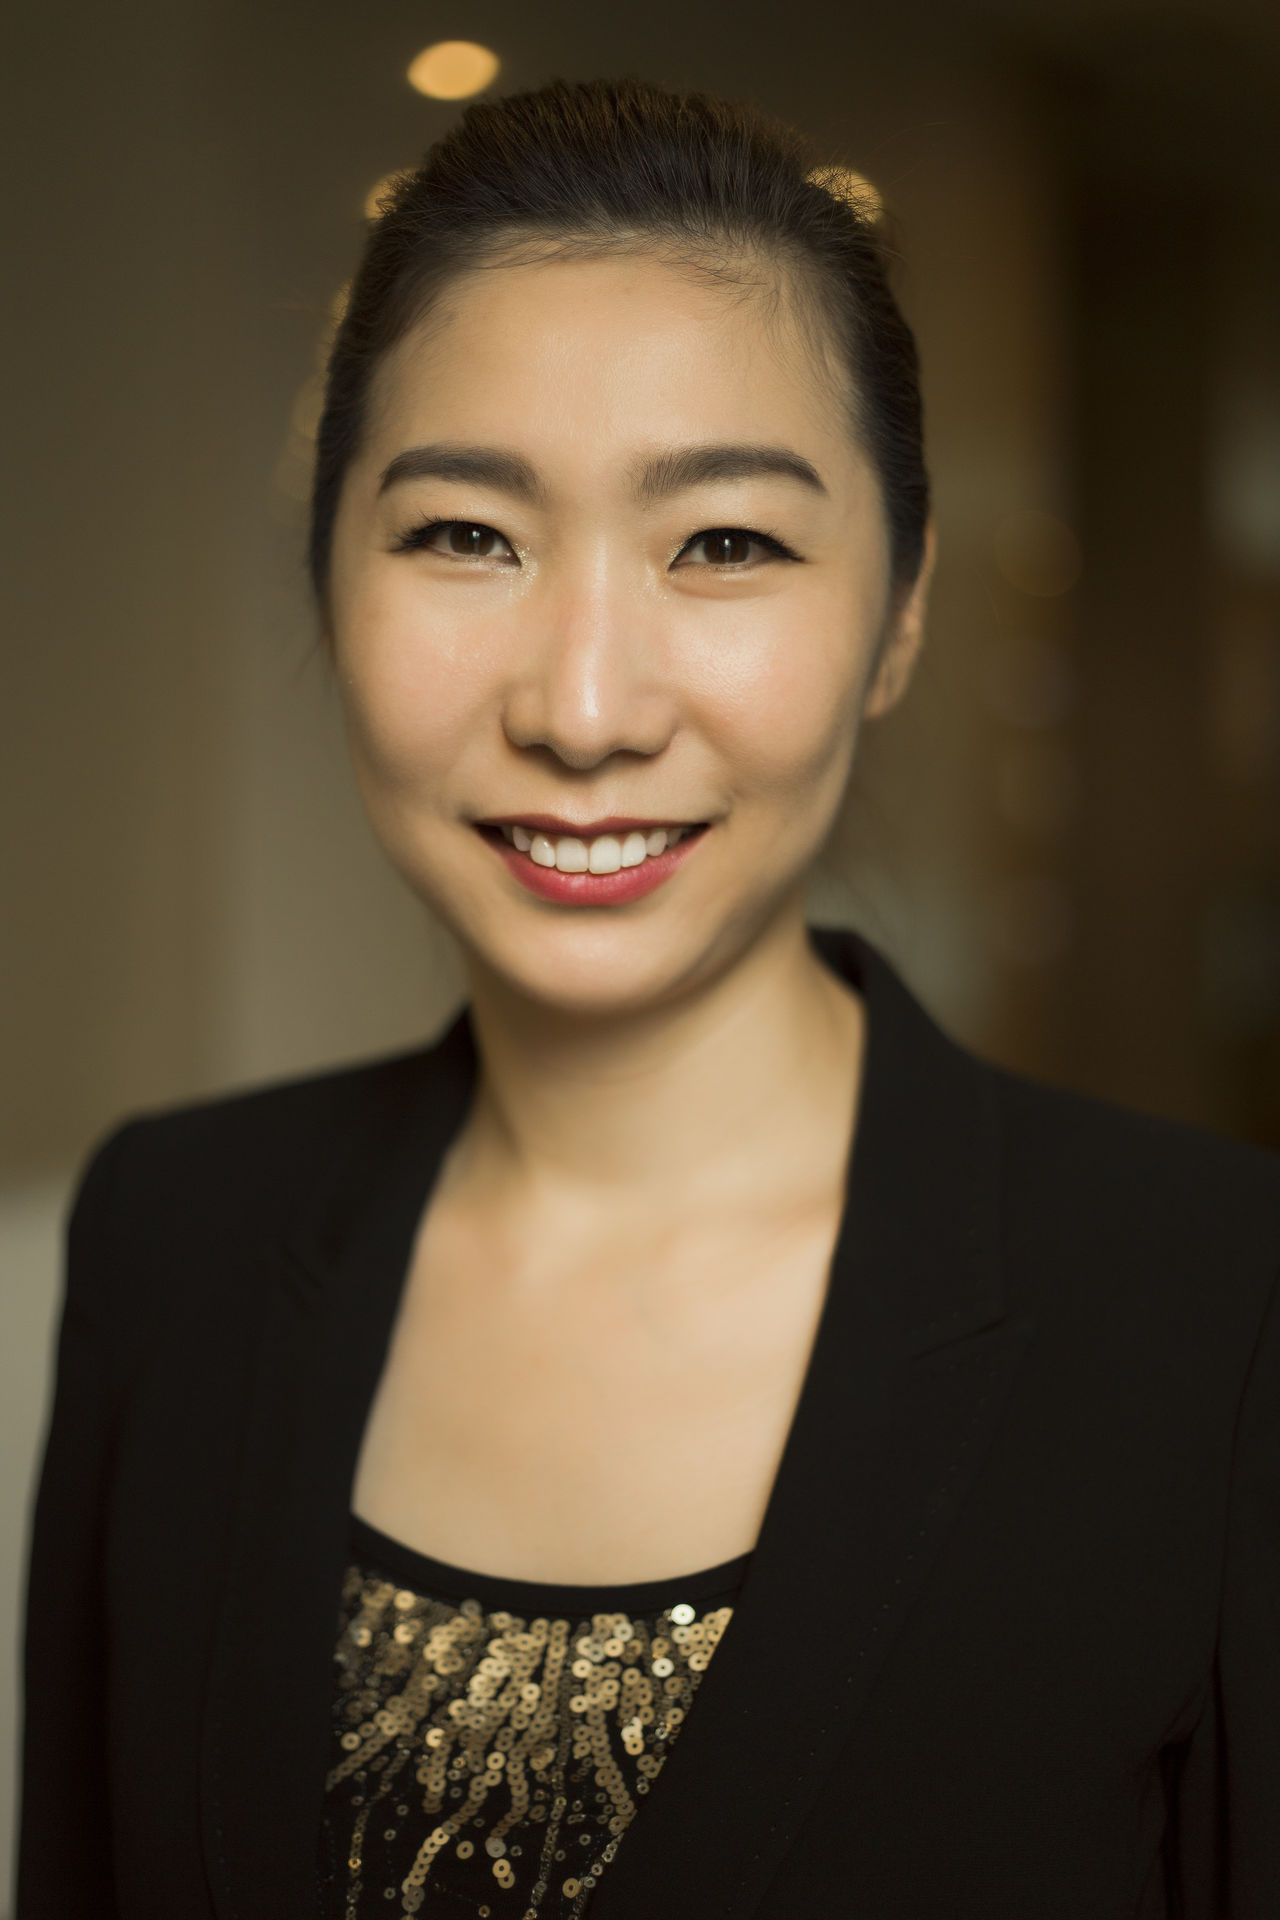 Portrait of an Asian Korean female business woman Business Businesswoman Close-up Elite Facial Expressions Headshot Human Face Korean Looking At Camera Manager Office People Person Portrait Skin Smiling The Portraitist - 2016 EyeEm Awards Happiness Happy Emotions